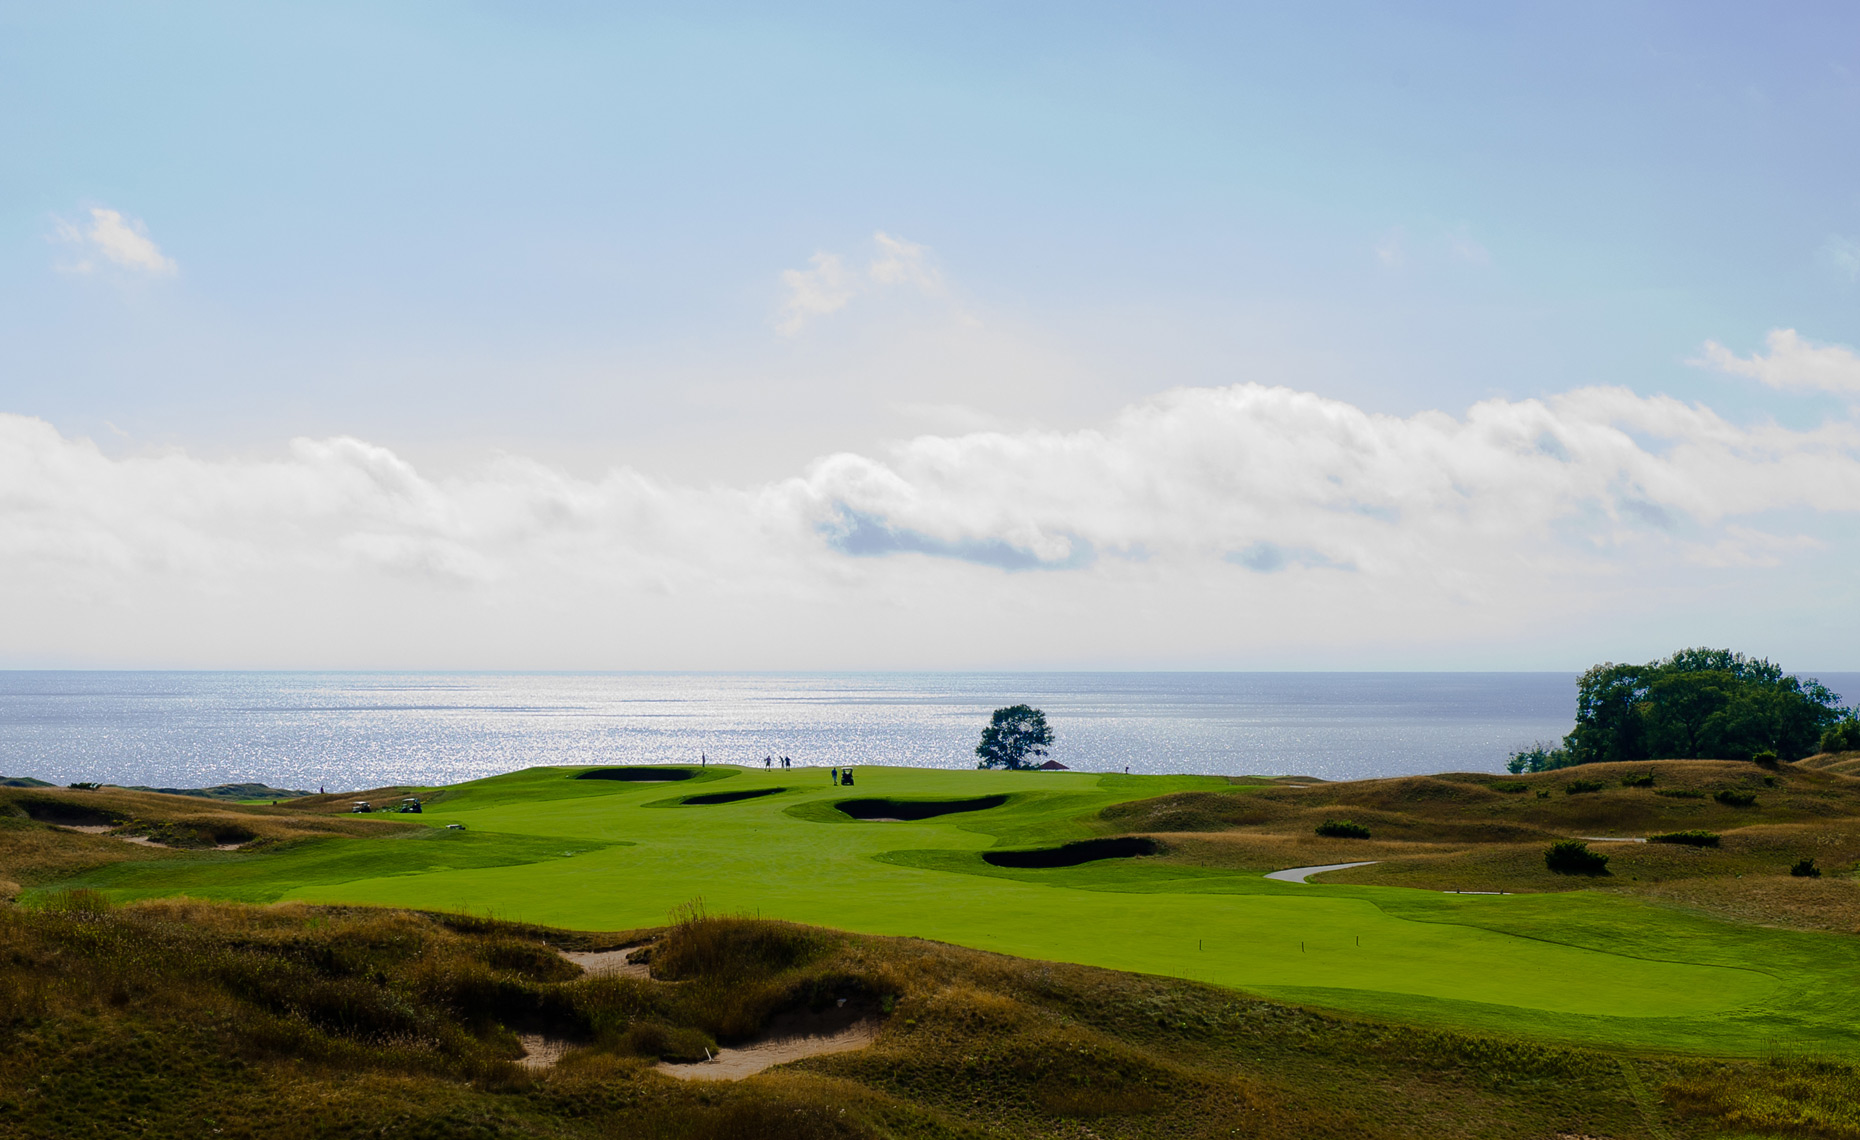 Neil-Colton-travel-photography-arcadia-bluffs-golf-club-101